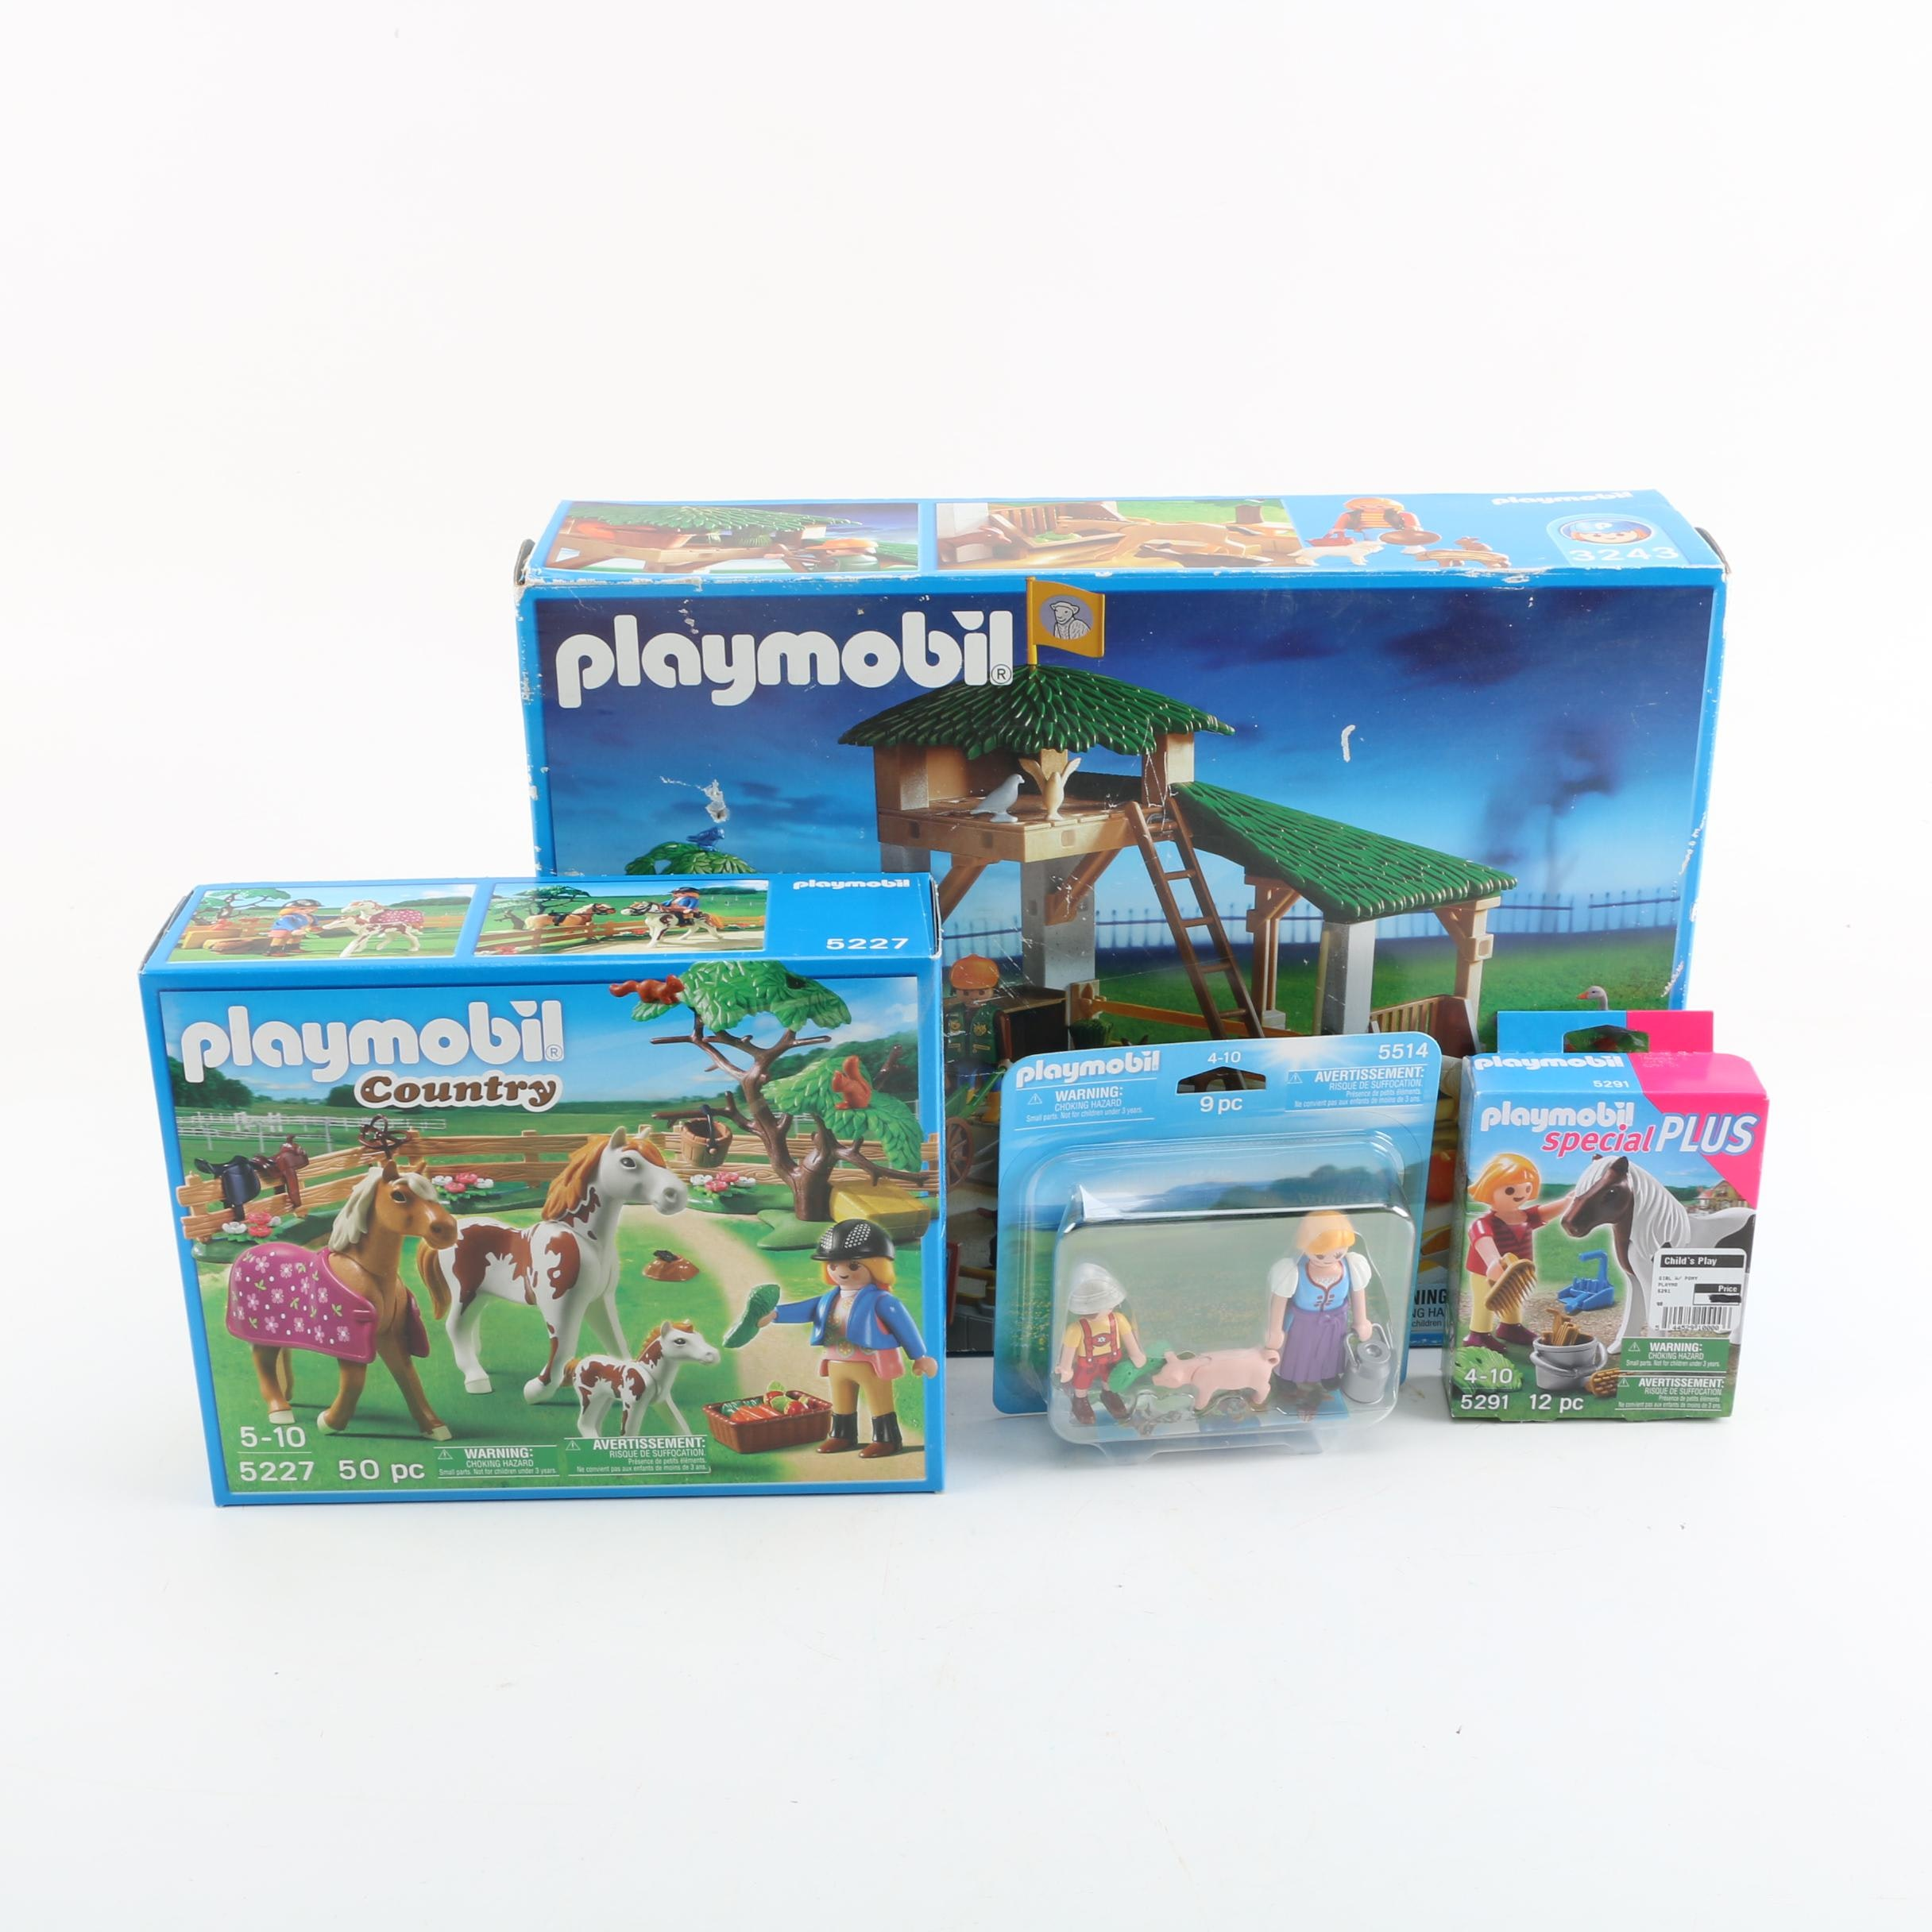 Playmobil Country Themed Sets